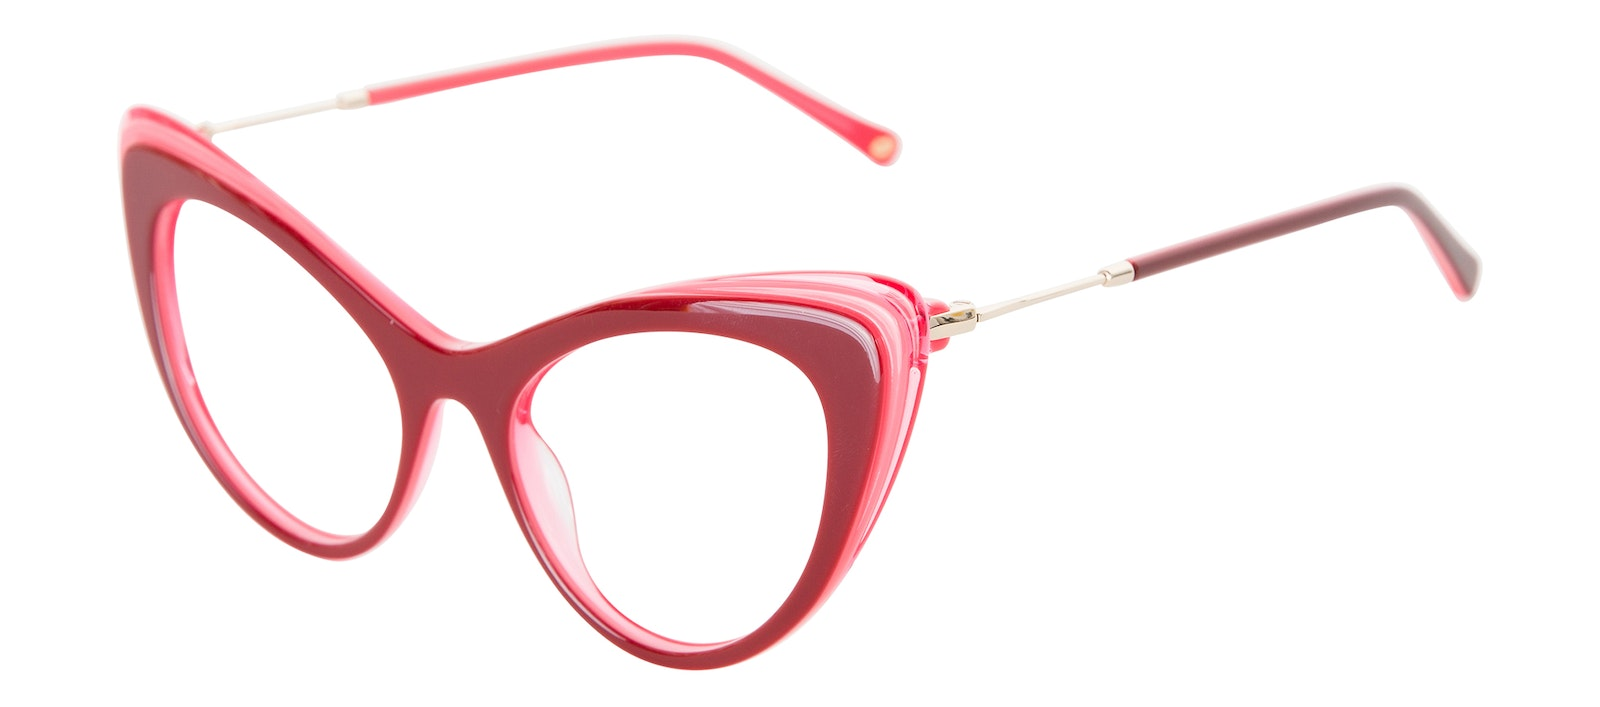 Affordable Fashion Glasses Cat Eye Eyeglasses Women Keiko-Chan Heartbreaker Tilt